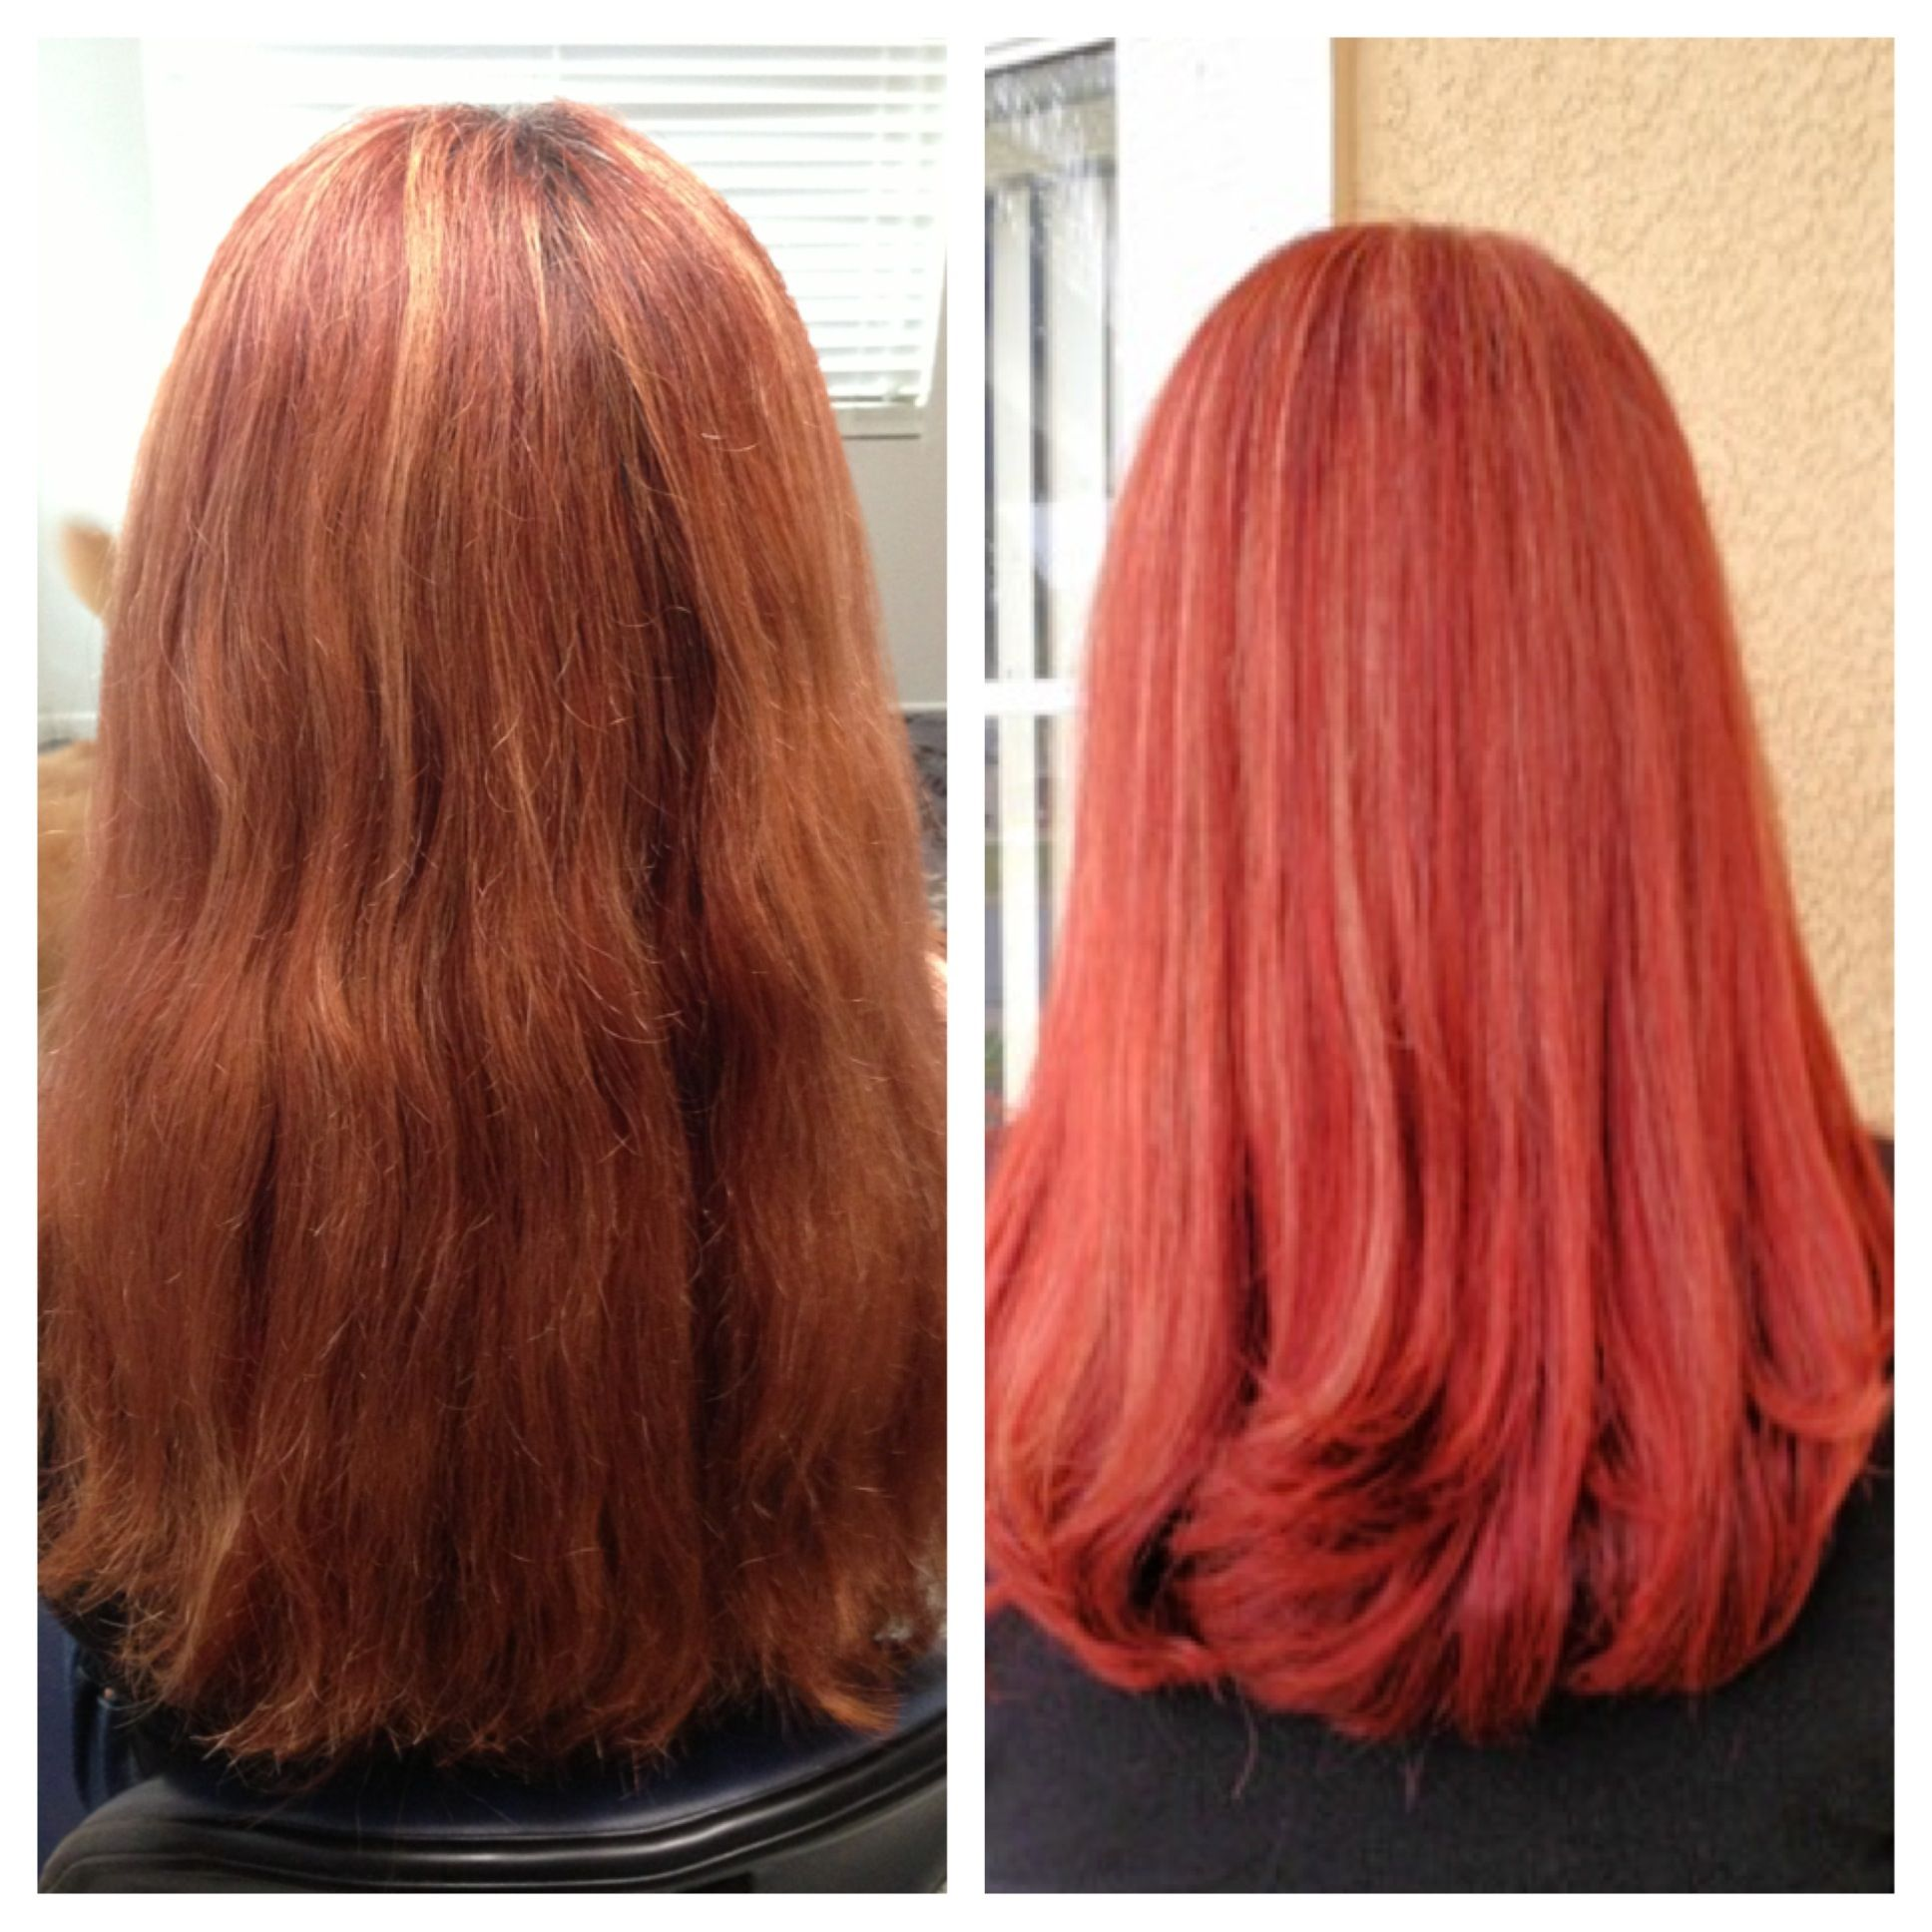 Before After Hd Red Hair Color Long Red Hair Matrix Hair Color